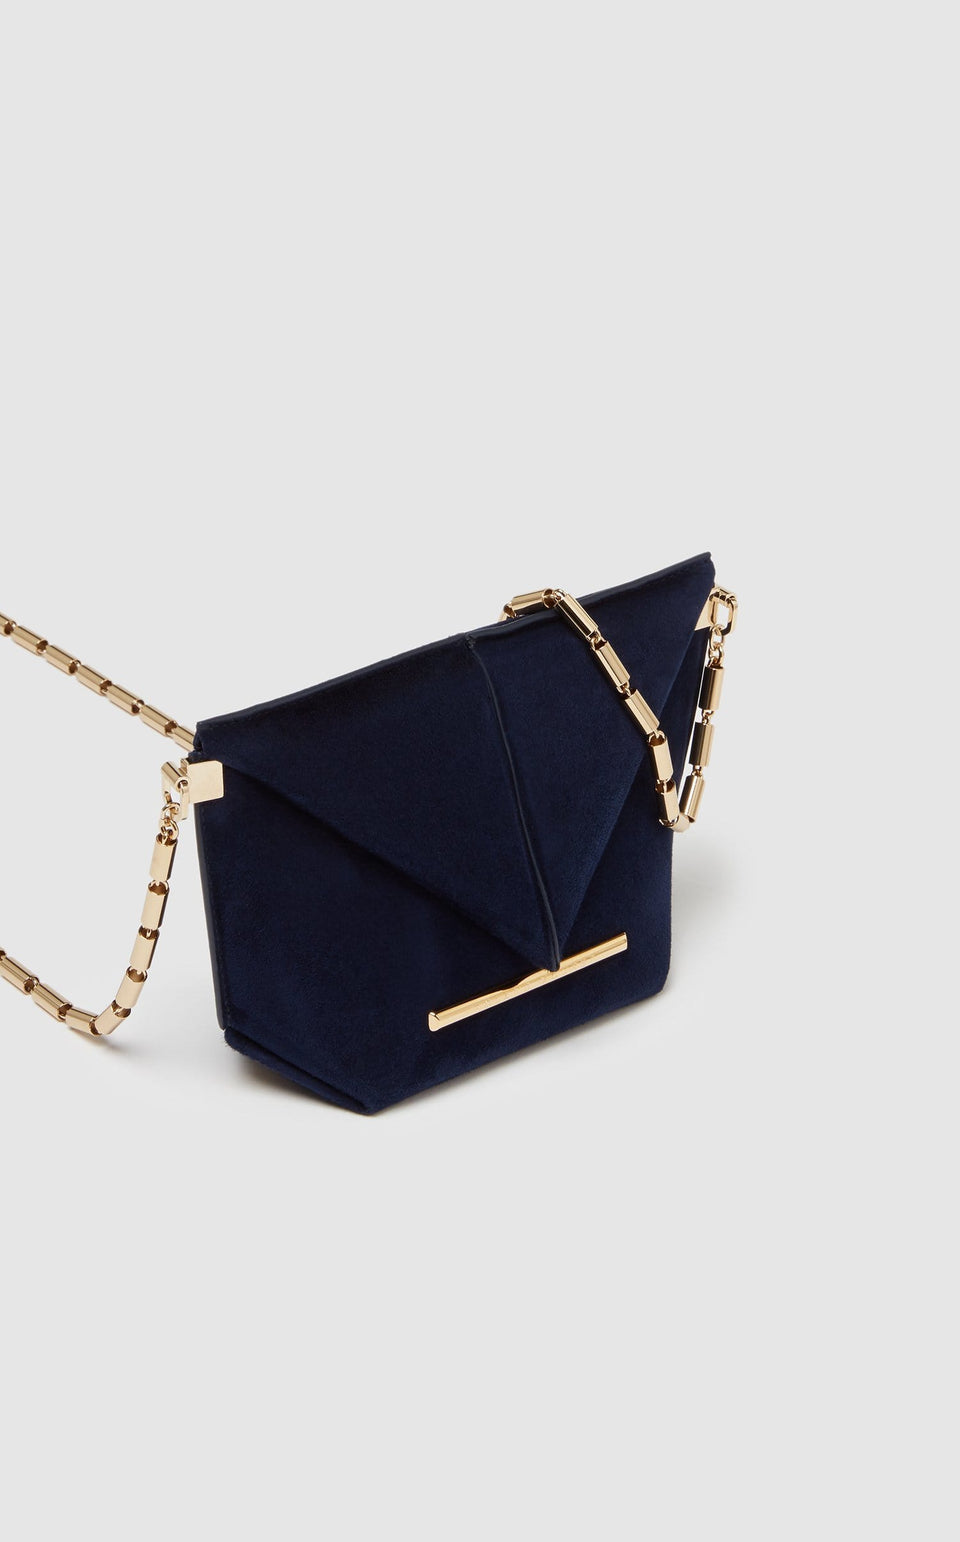 Mini Classico Bag In Navy from Roland Mouret